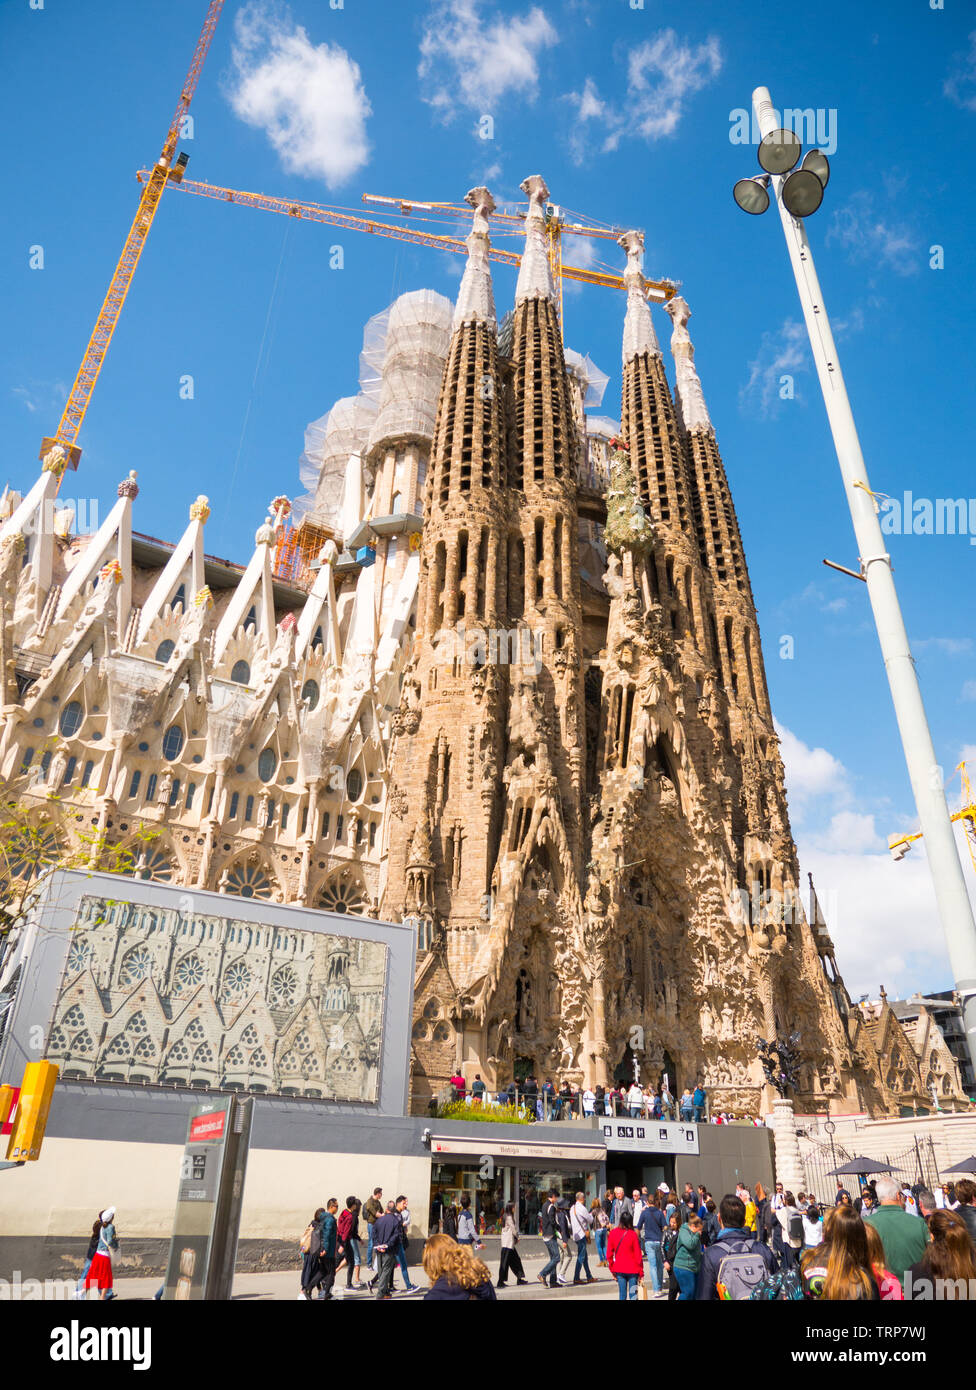 Barcelona, Spain - May 2019: Cathedral of La Sagrada Familia. It is designed by architect Antonio Gaudi and is being build since 1882. - Stock Image